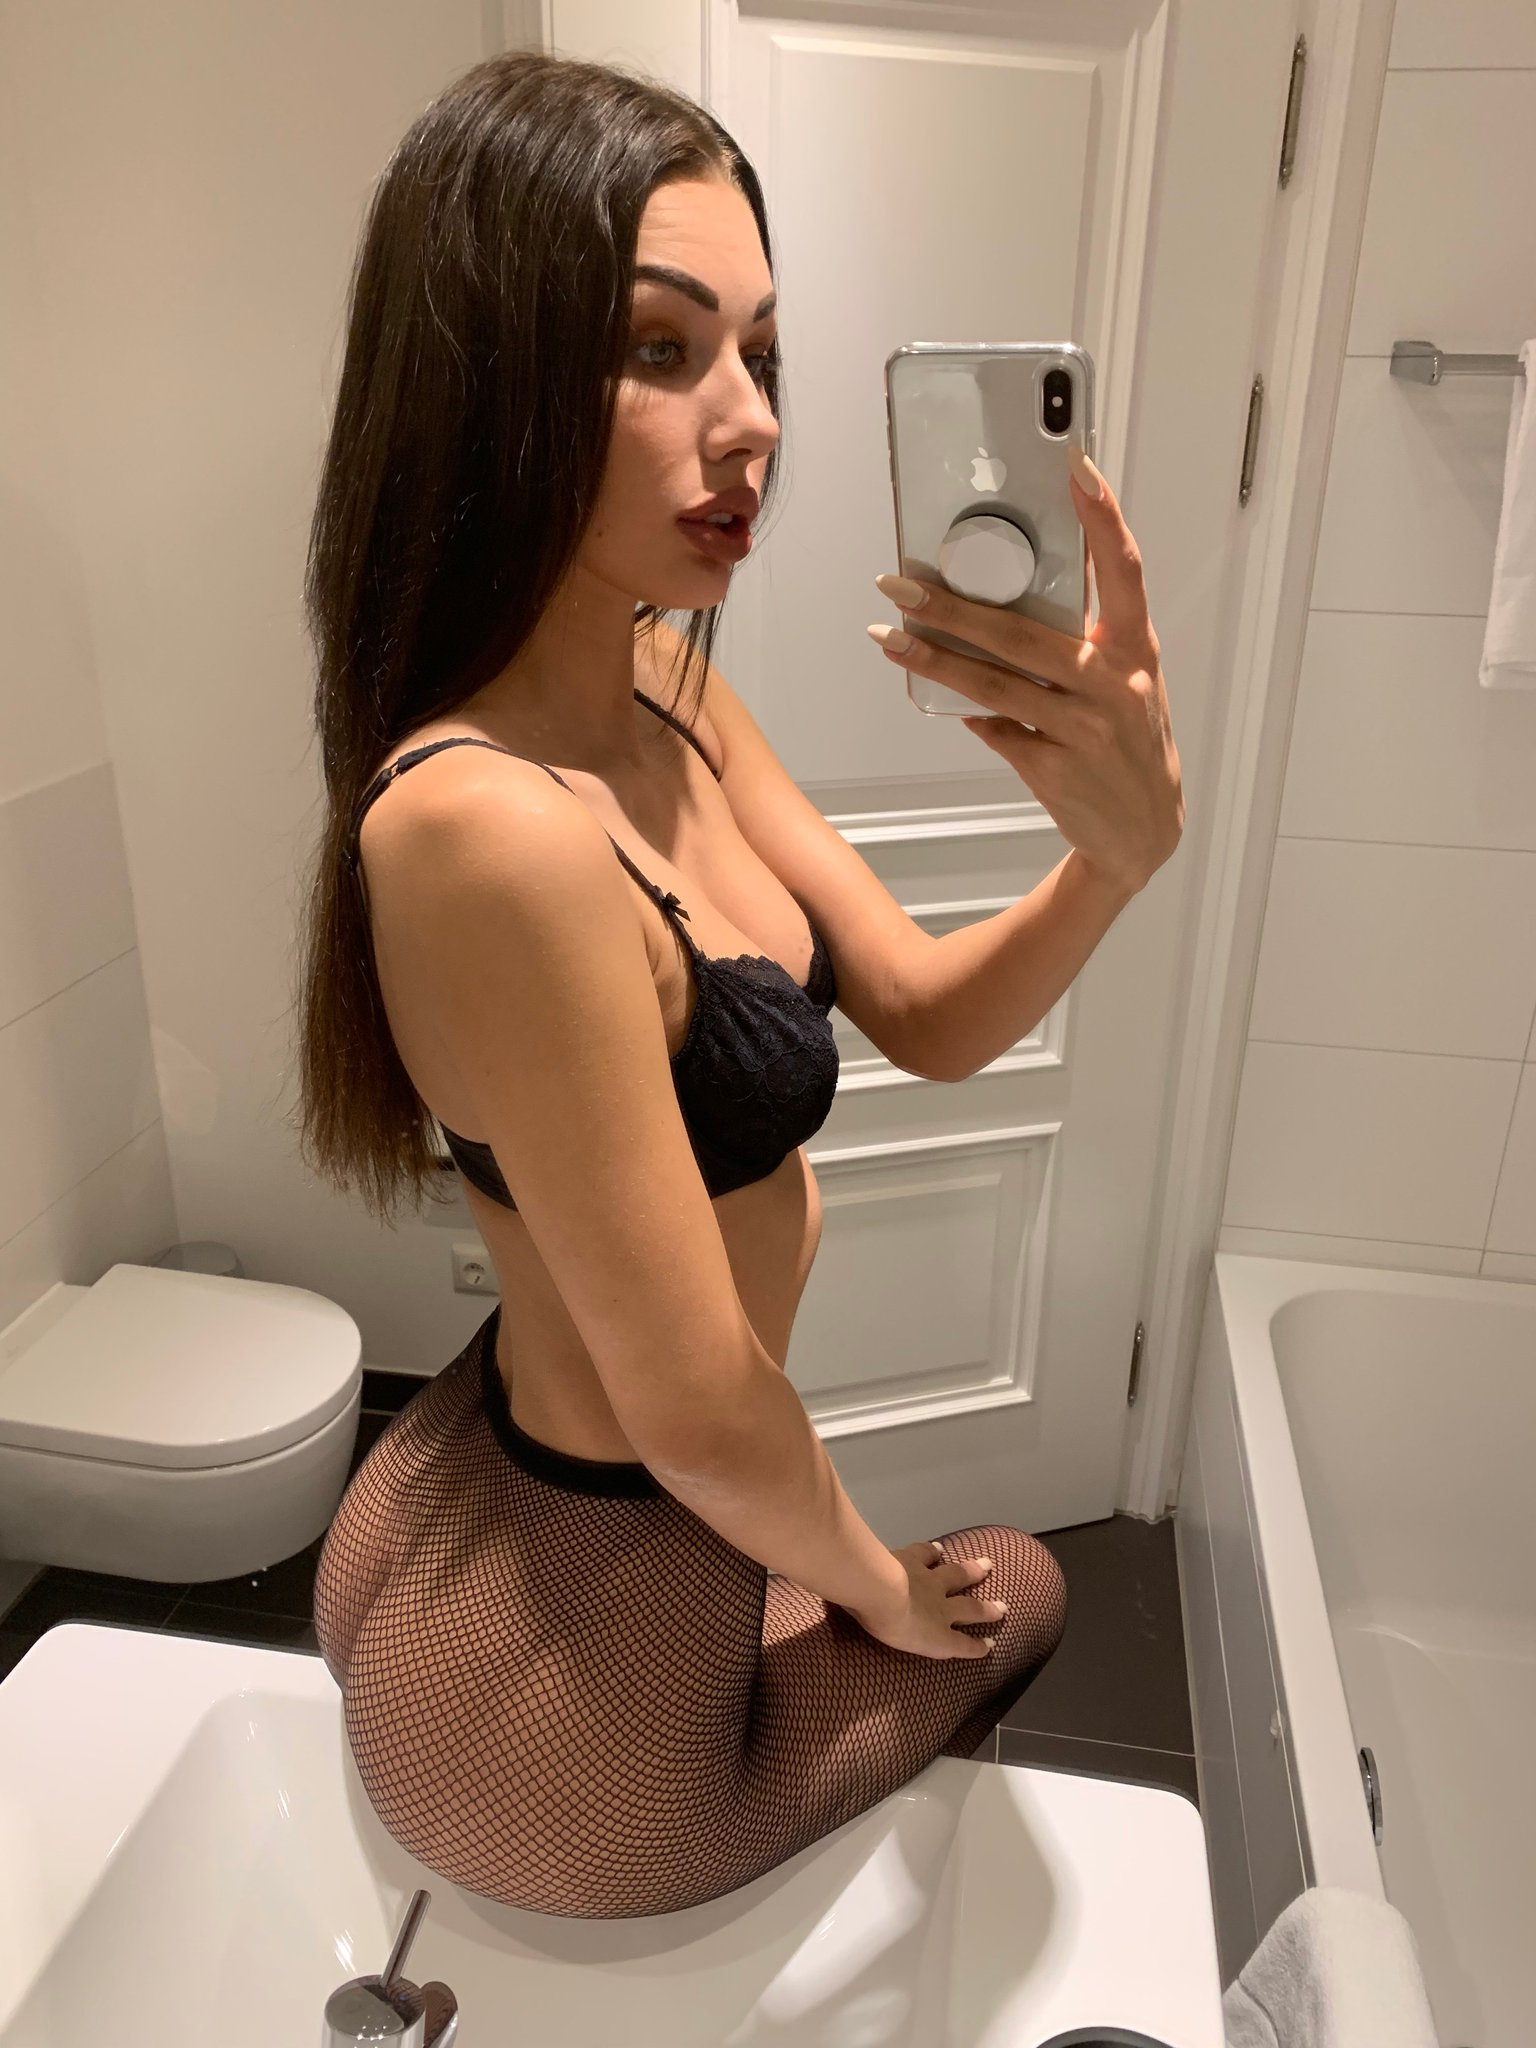 Shaiden Rogue Porn OnlyFans Leaked Nudes 141